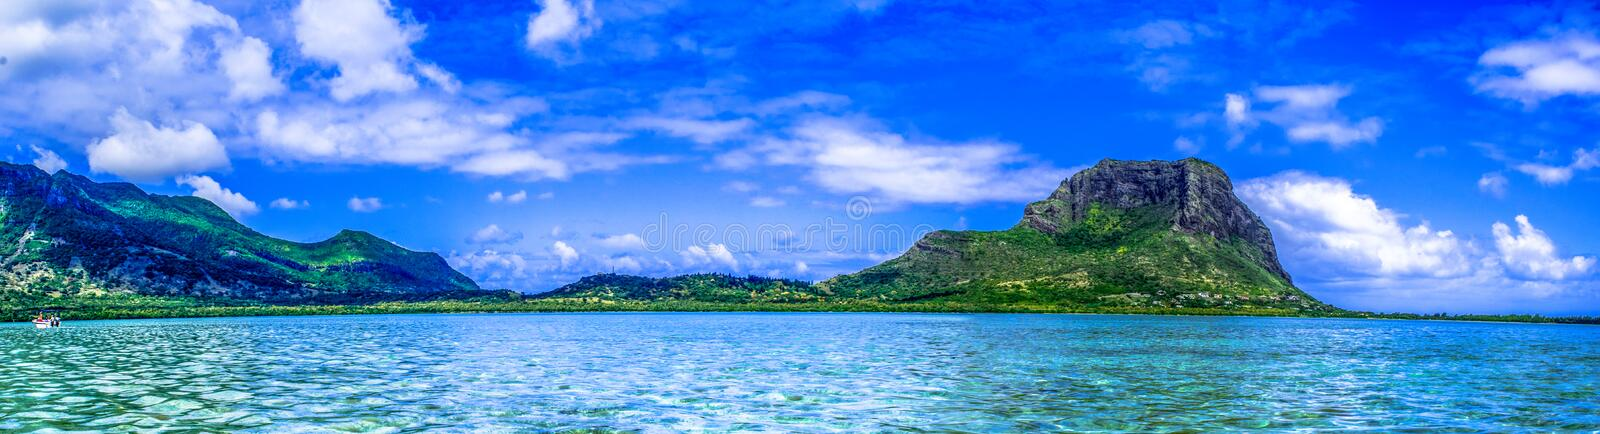 Morne d'Au photographie stock